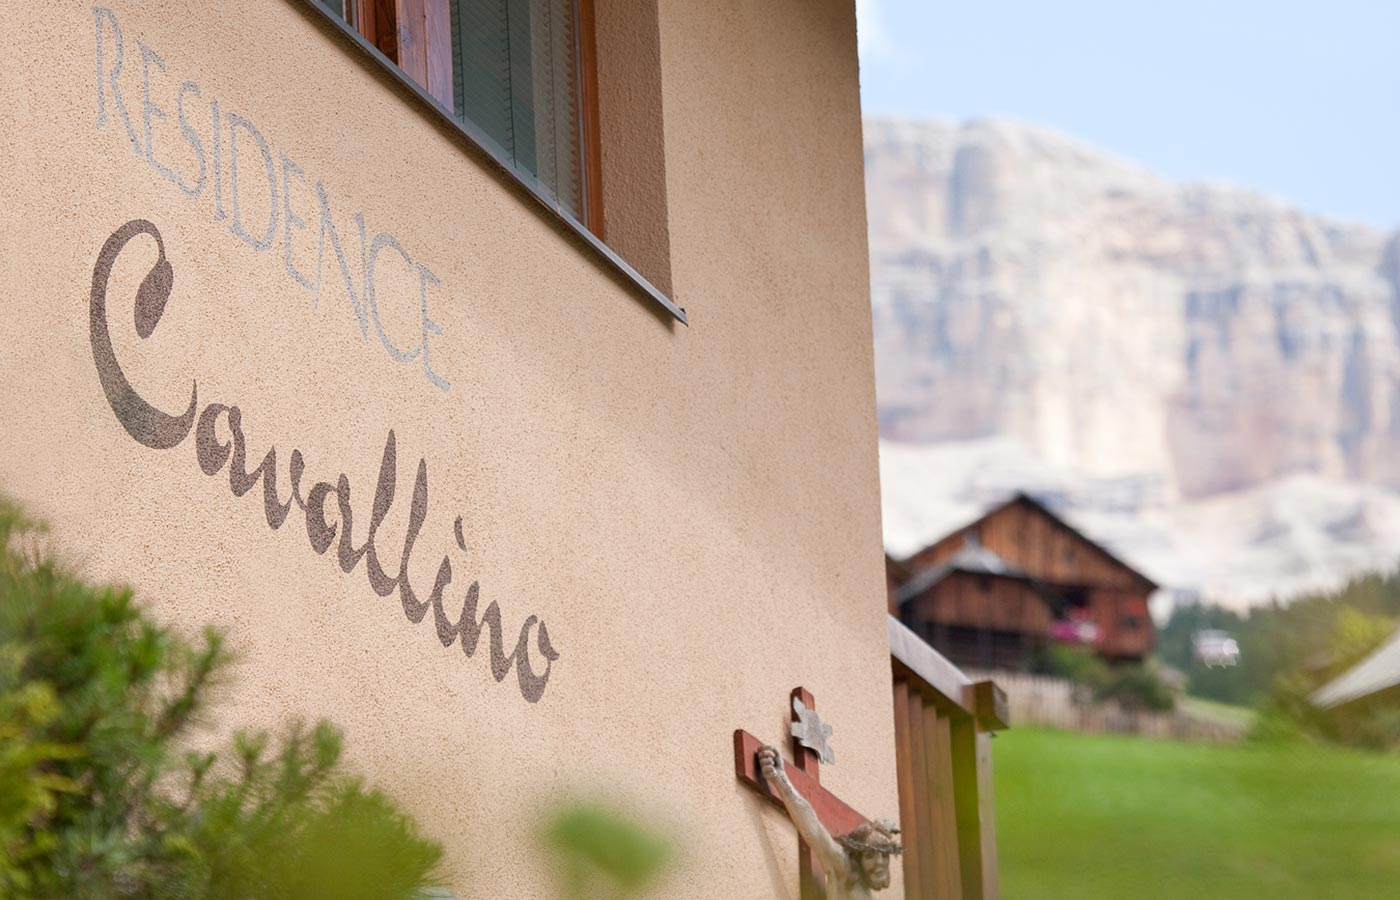 Writing 'Cavallino' on the hotel front